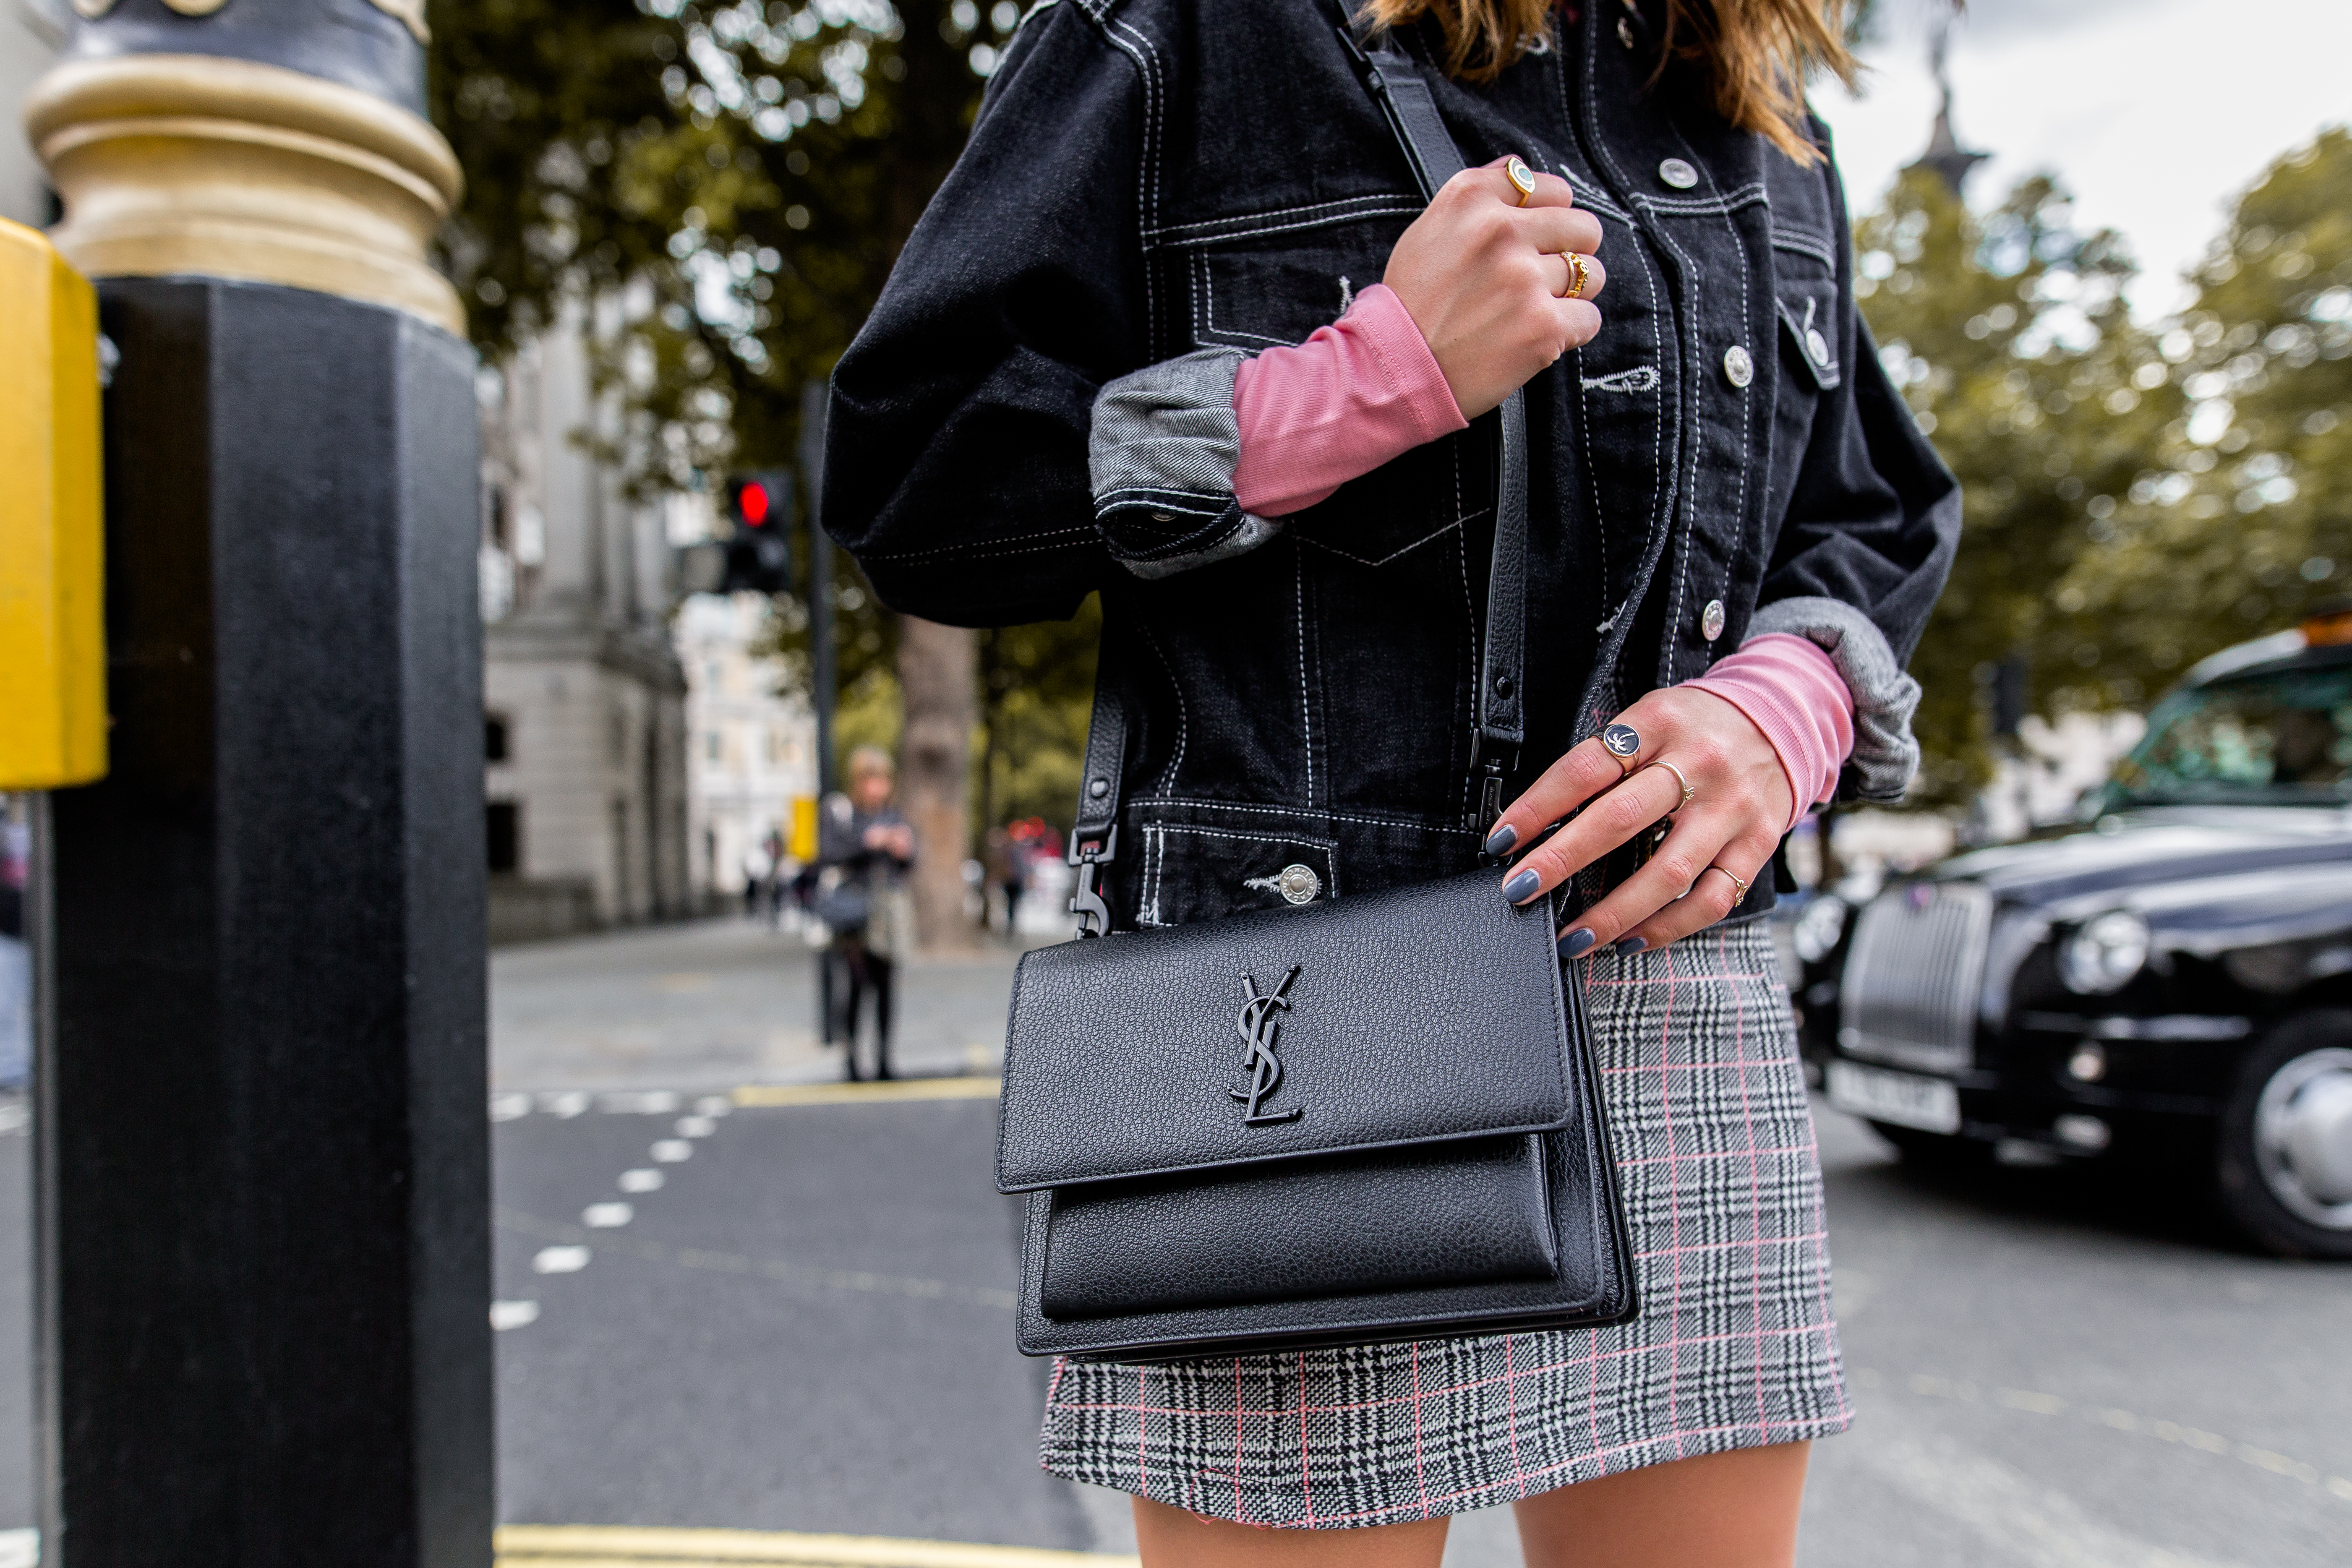 MEGAN ELLABY HOW TO STYLE THE SAINT LAURENT SUNSET BAG